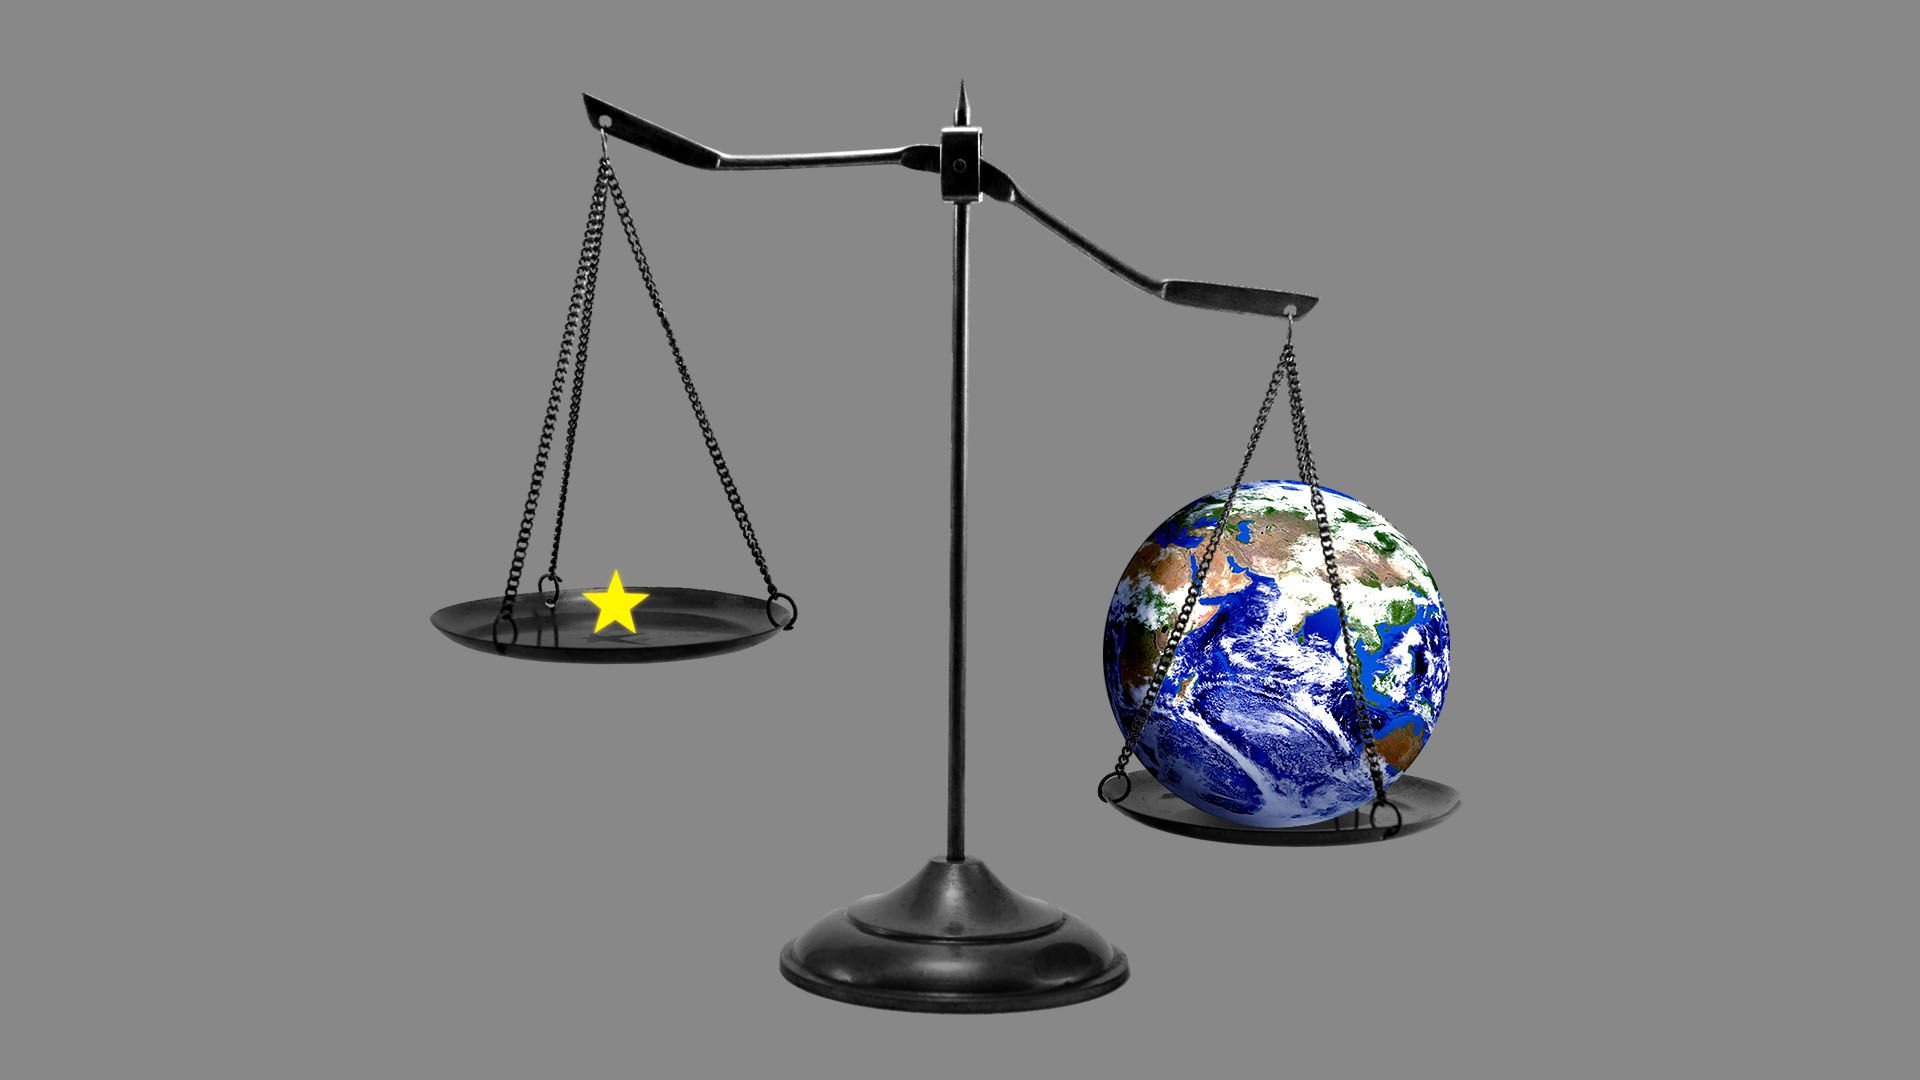 Illustration of scale with globe on one side and small star from EU flag on the other.